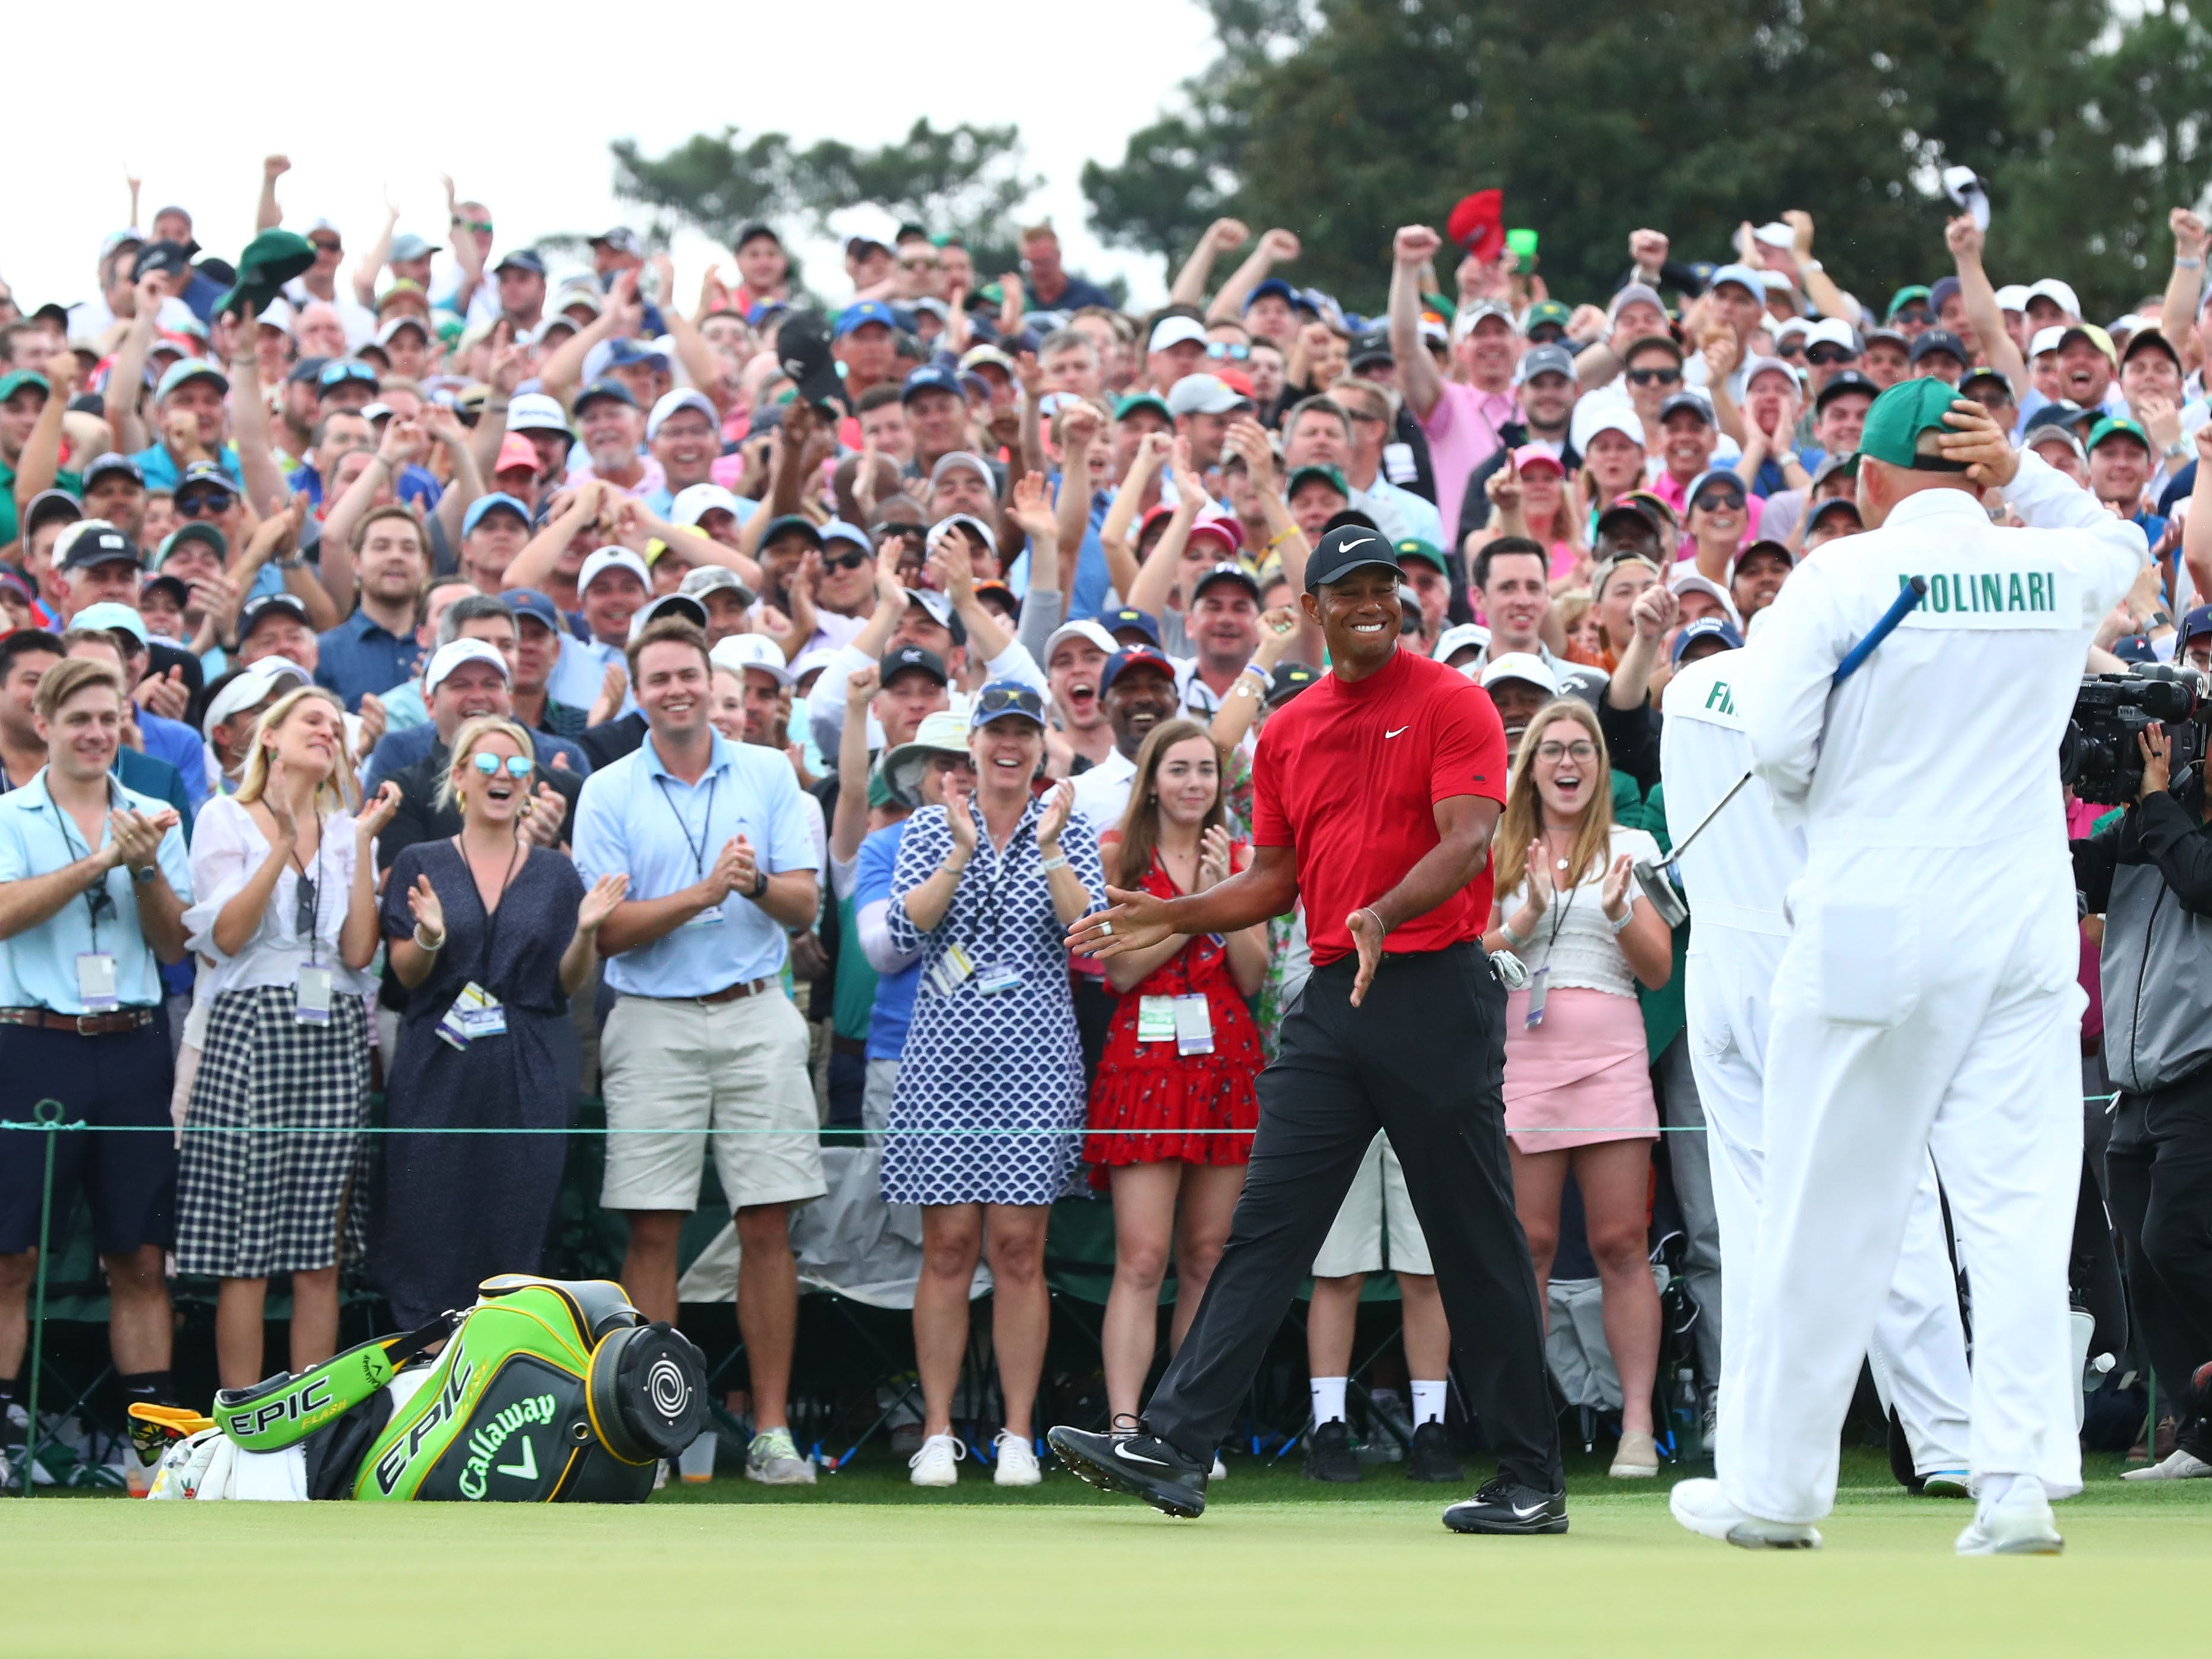 Fans cheer as Tiger Woods leaves the 18th green.